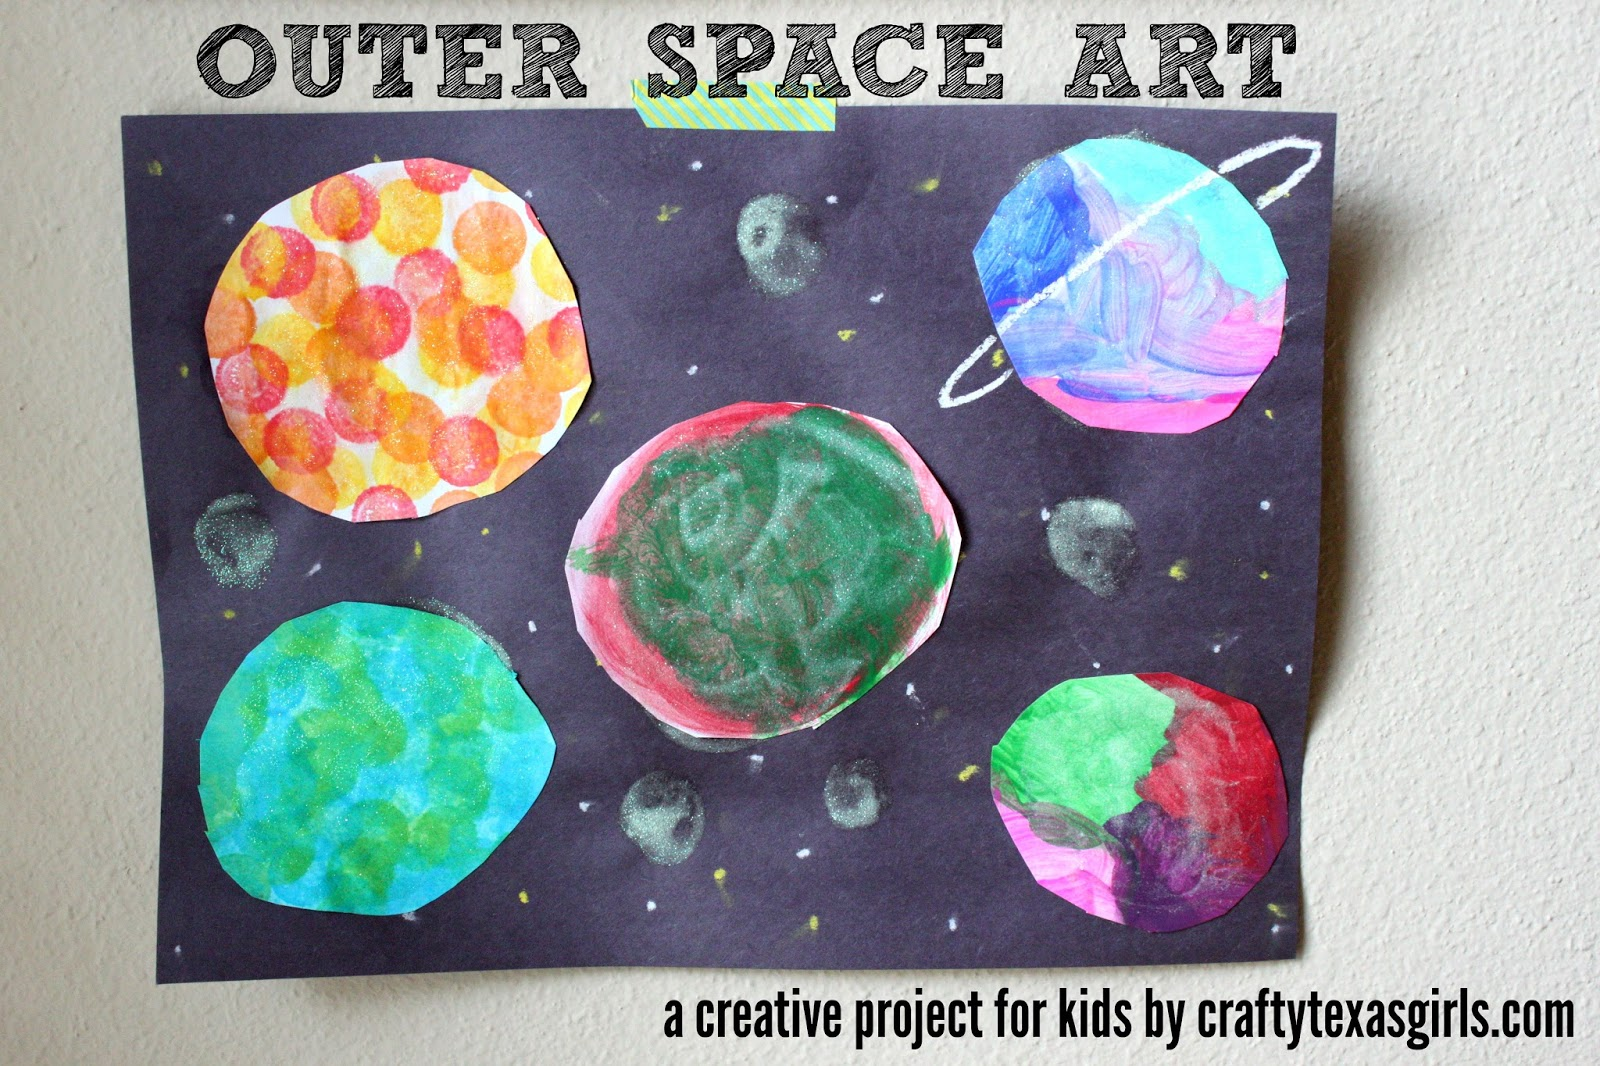 Crafty texas girls outer space art inspired by creative for Outer space project